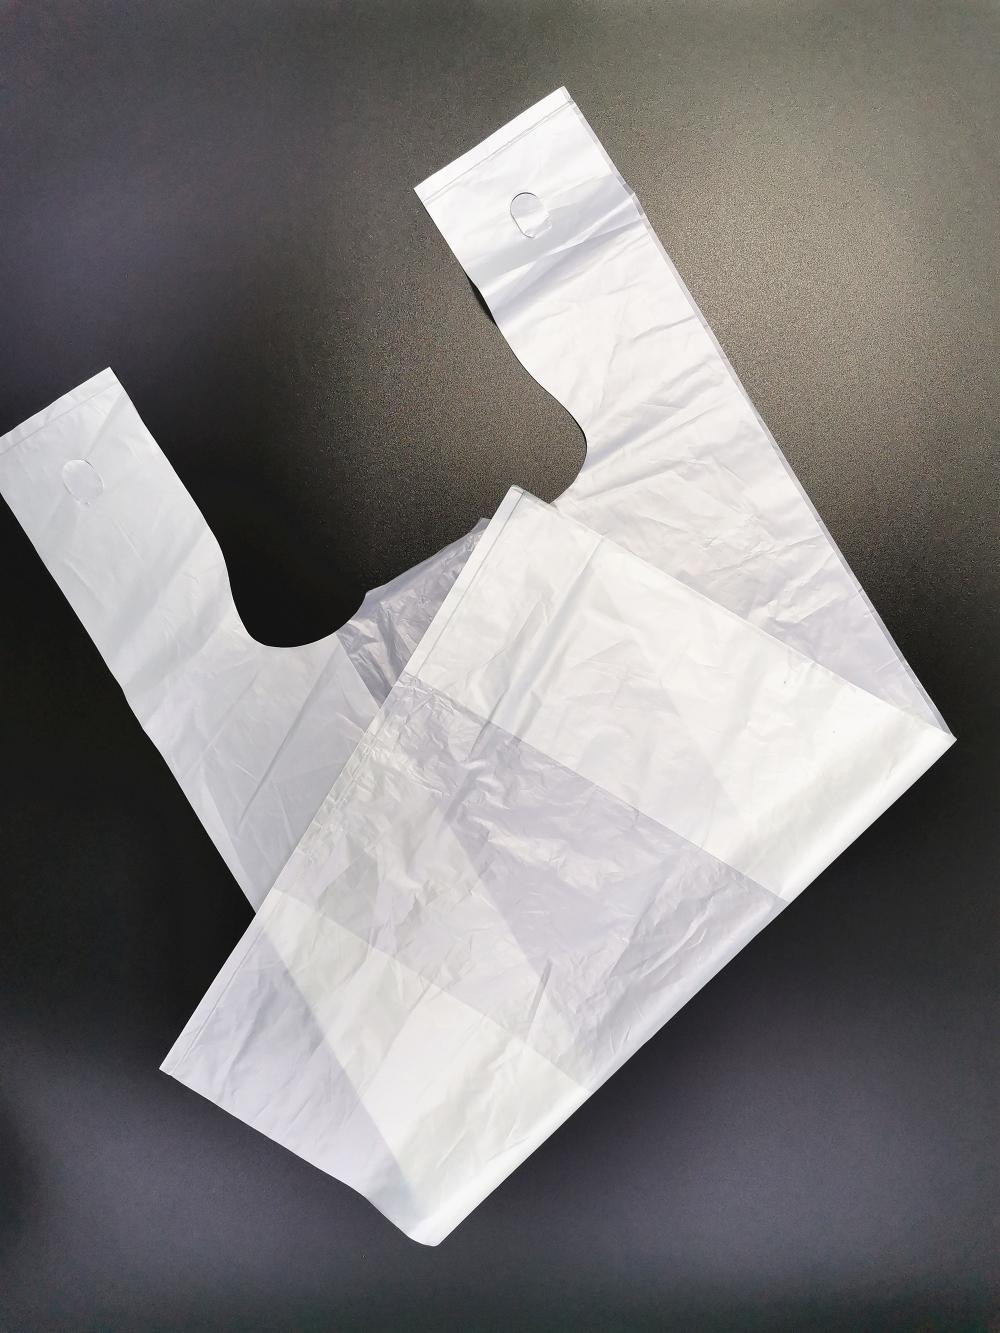 Compostable Non-toxic Plastic Shopping Bags